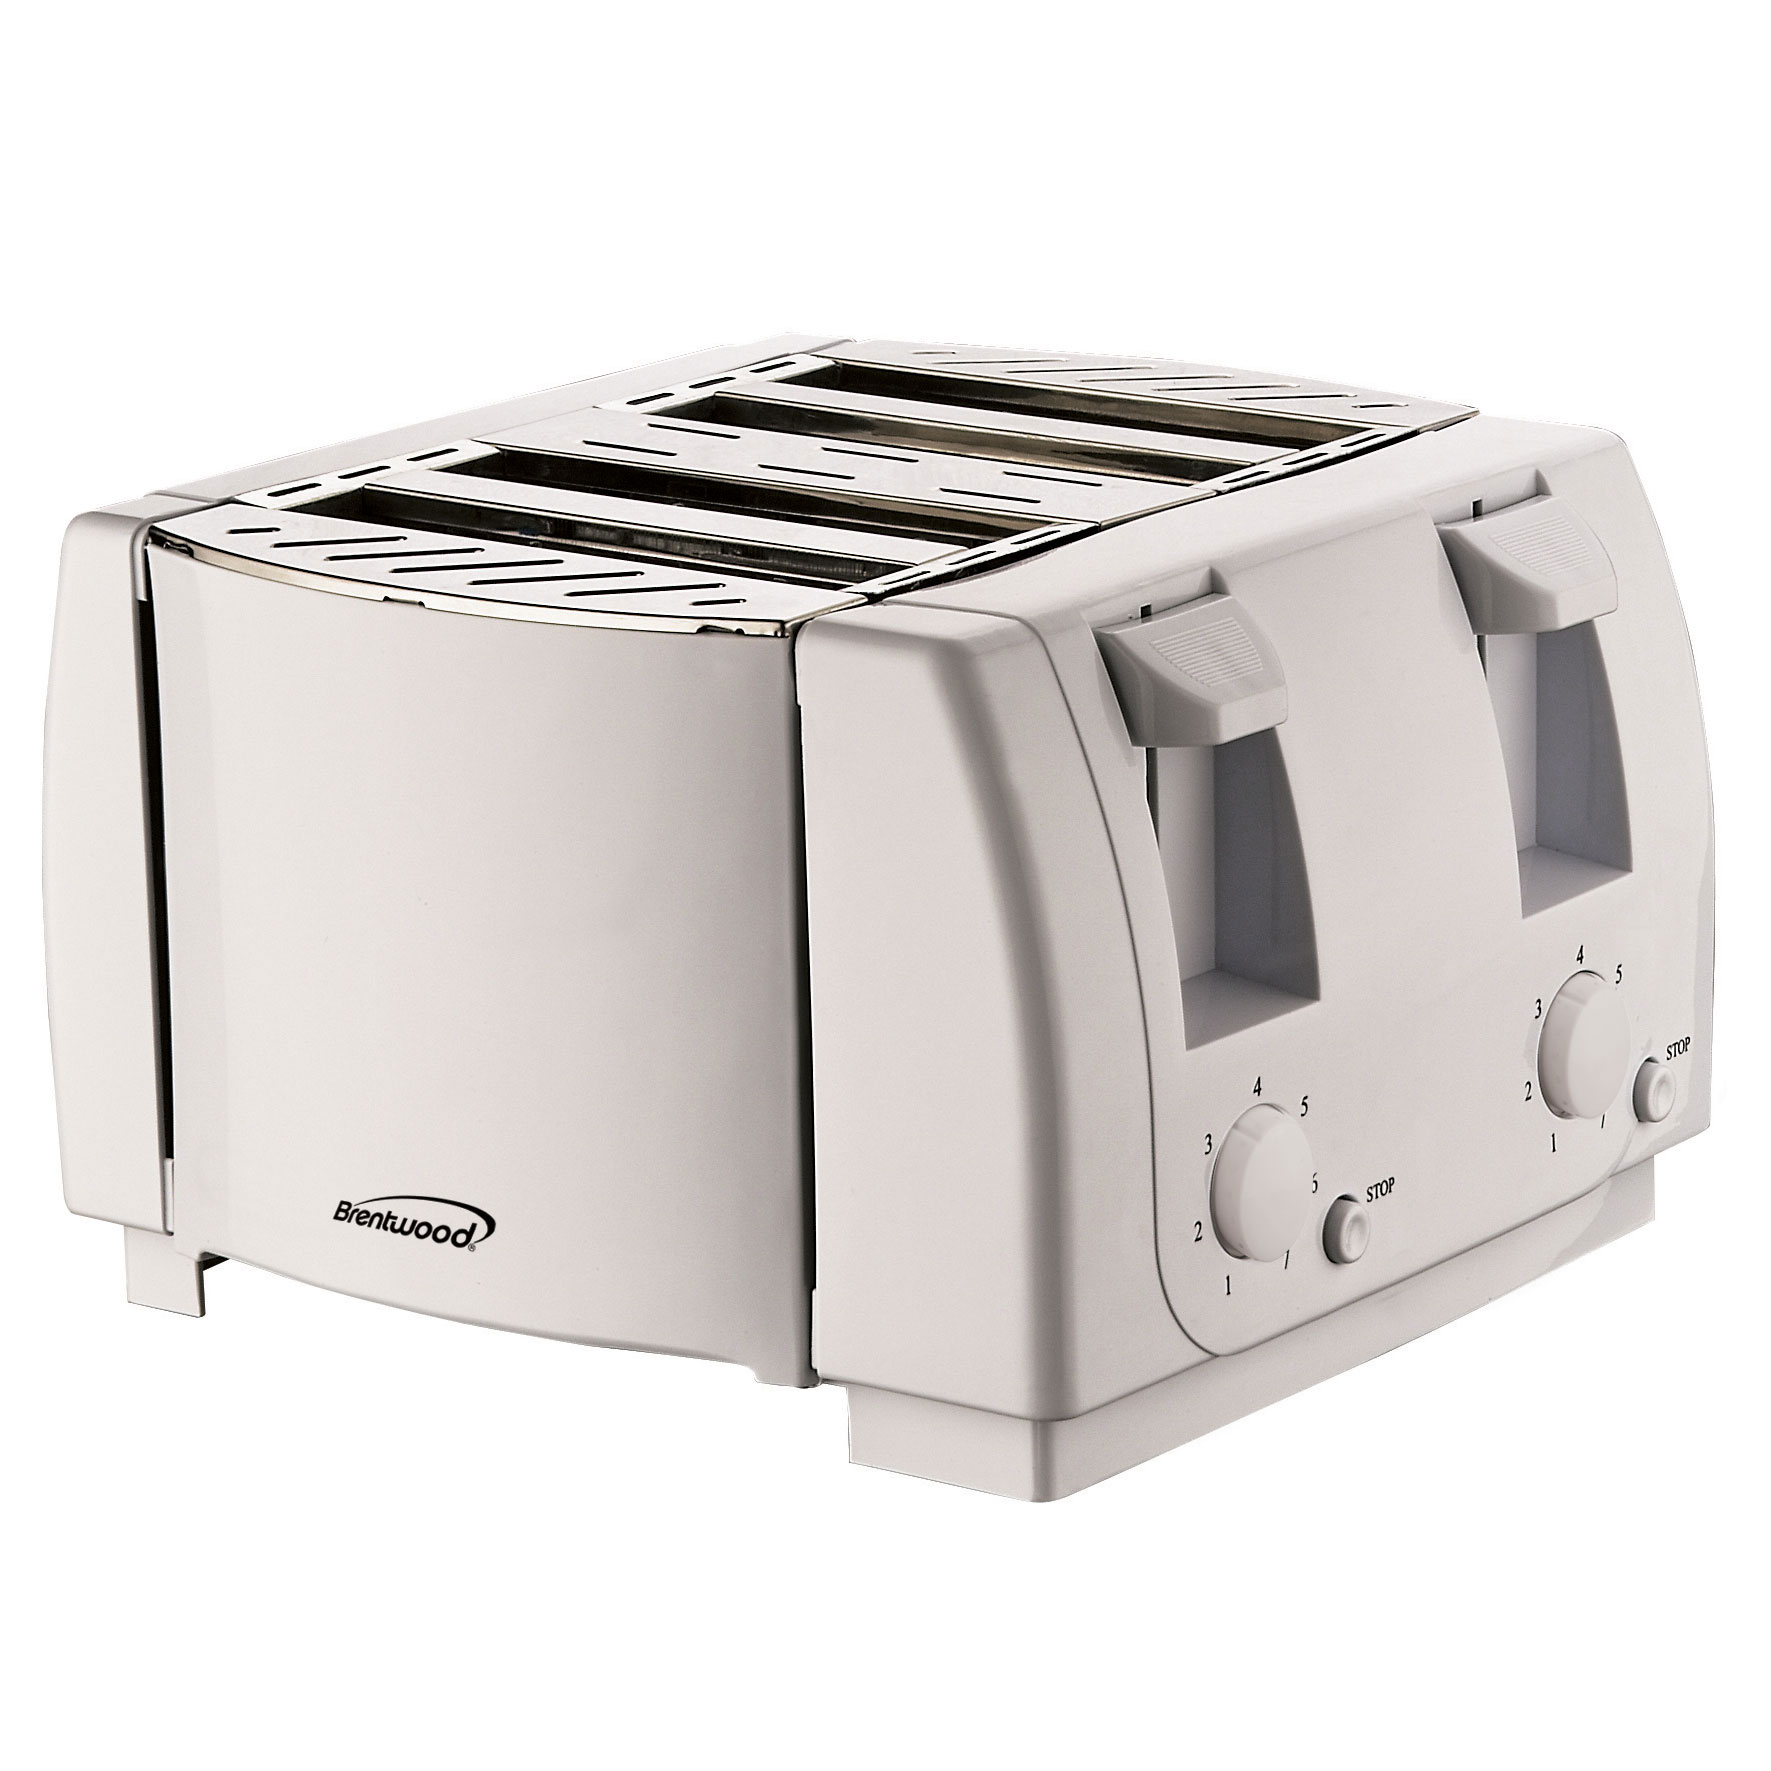 Brentwood TS-265 Cool Touch 4 Slice Toaster, White